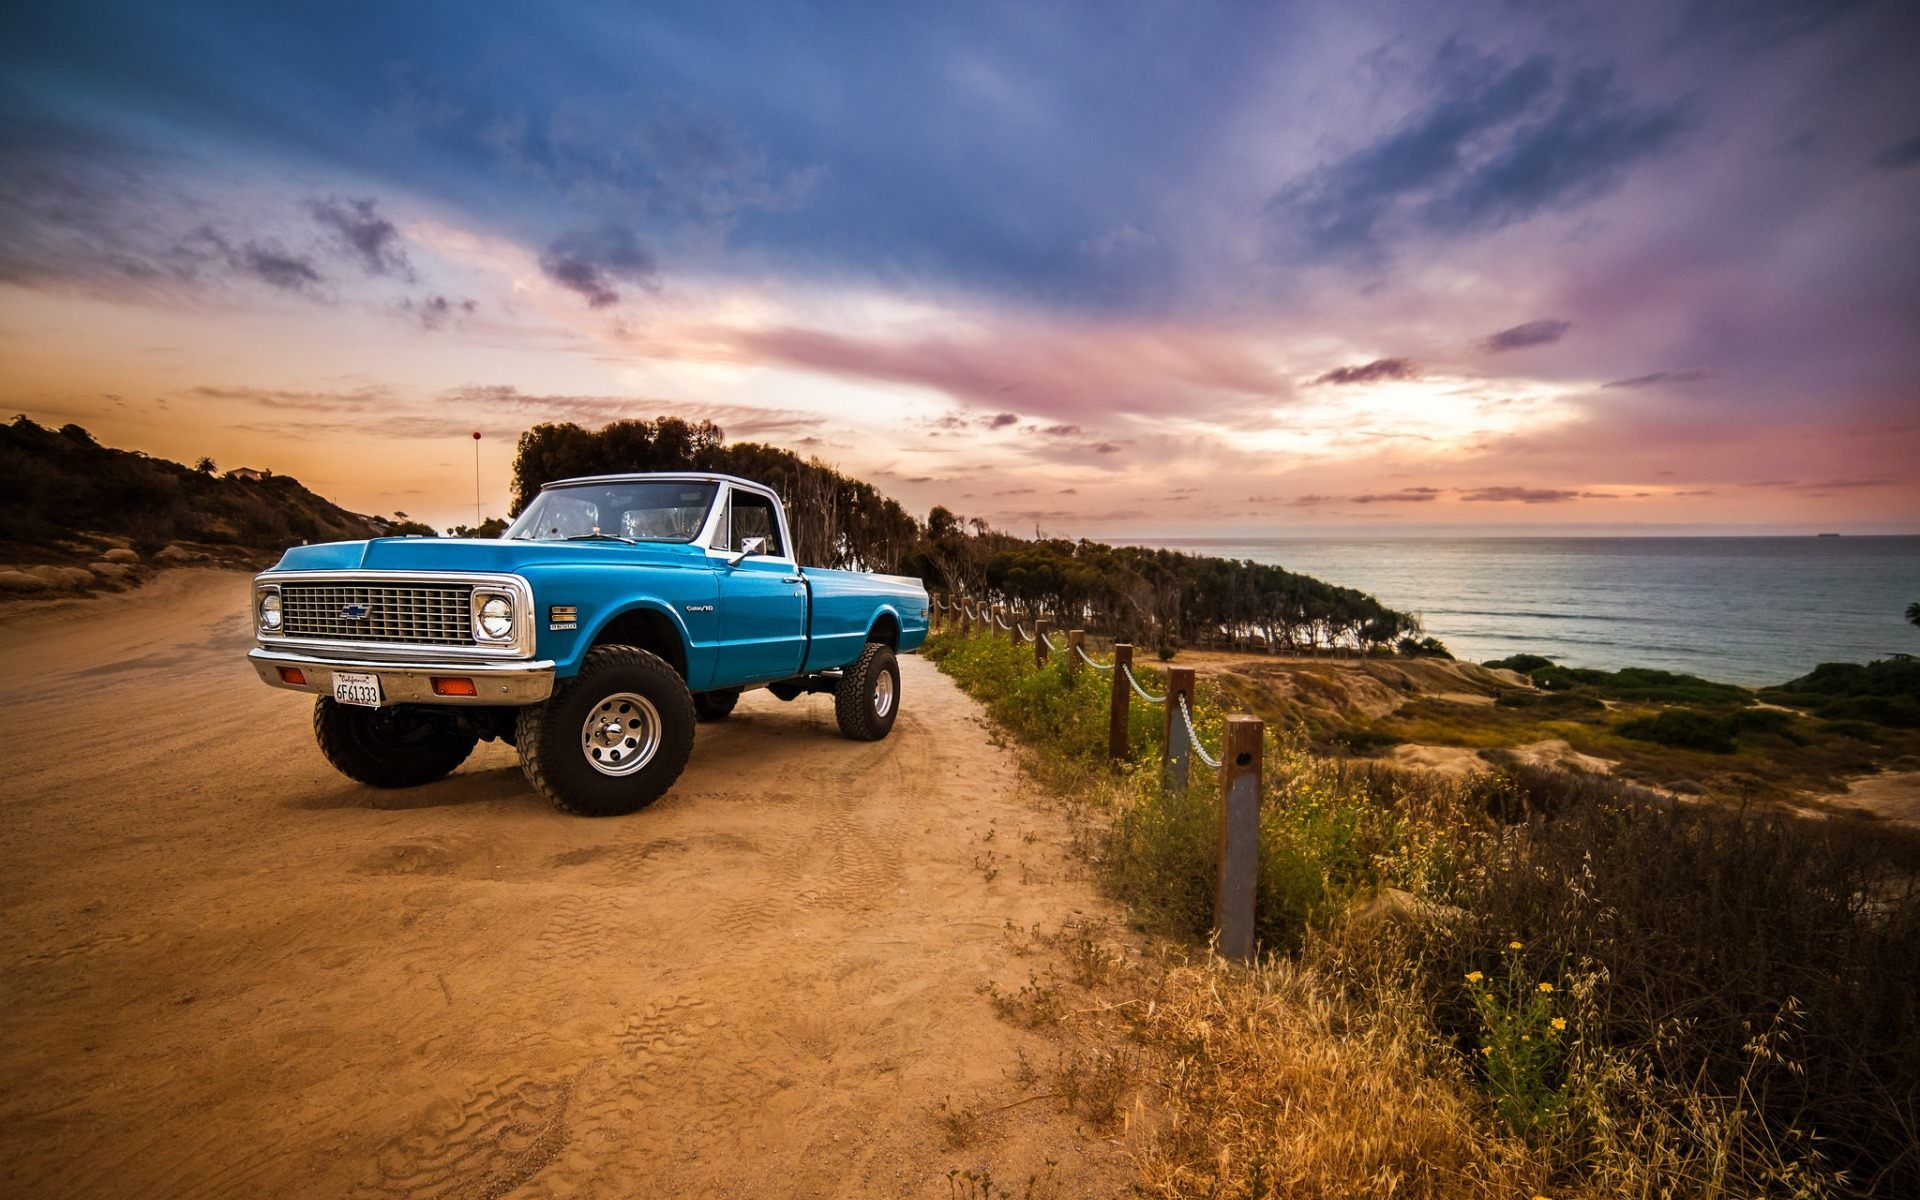 Chevrolet Truck Wallpaper Hd Resolution Ntc Chevrolet Used